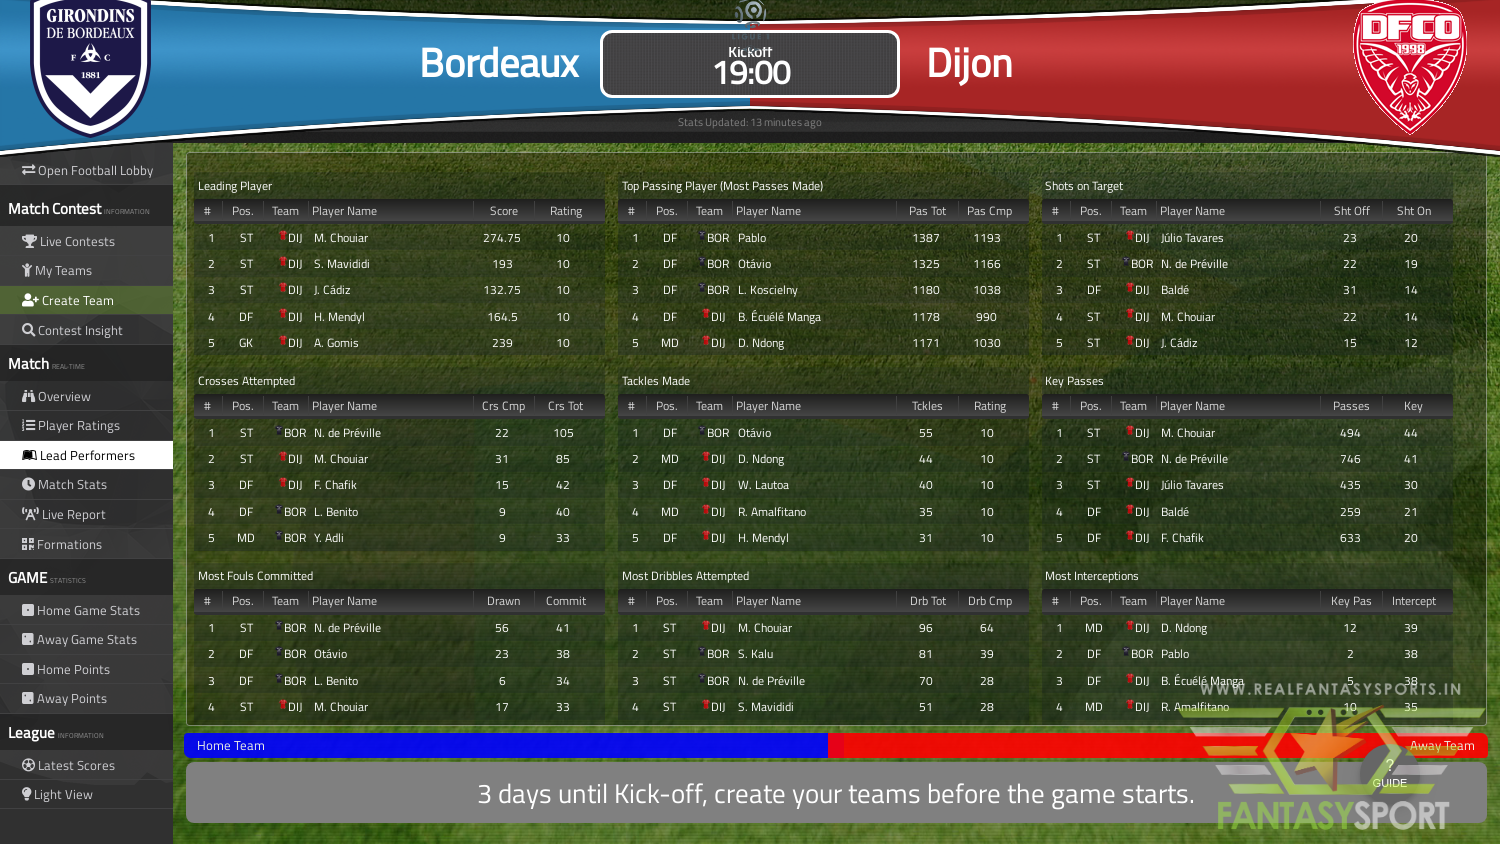 Bordeaux Vs Dijon Fantasy Football Team